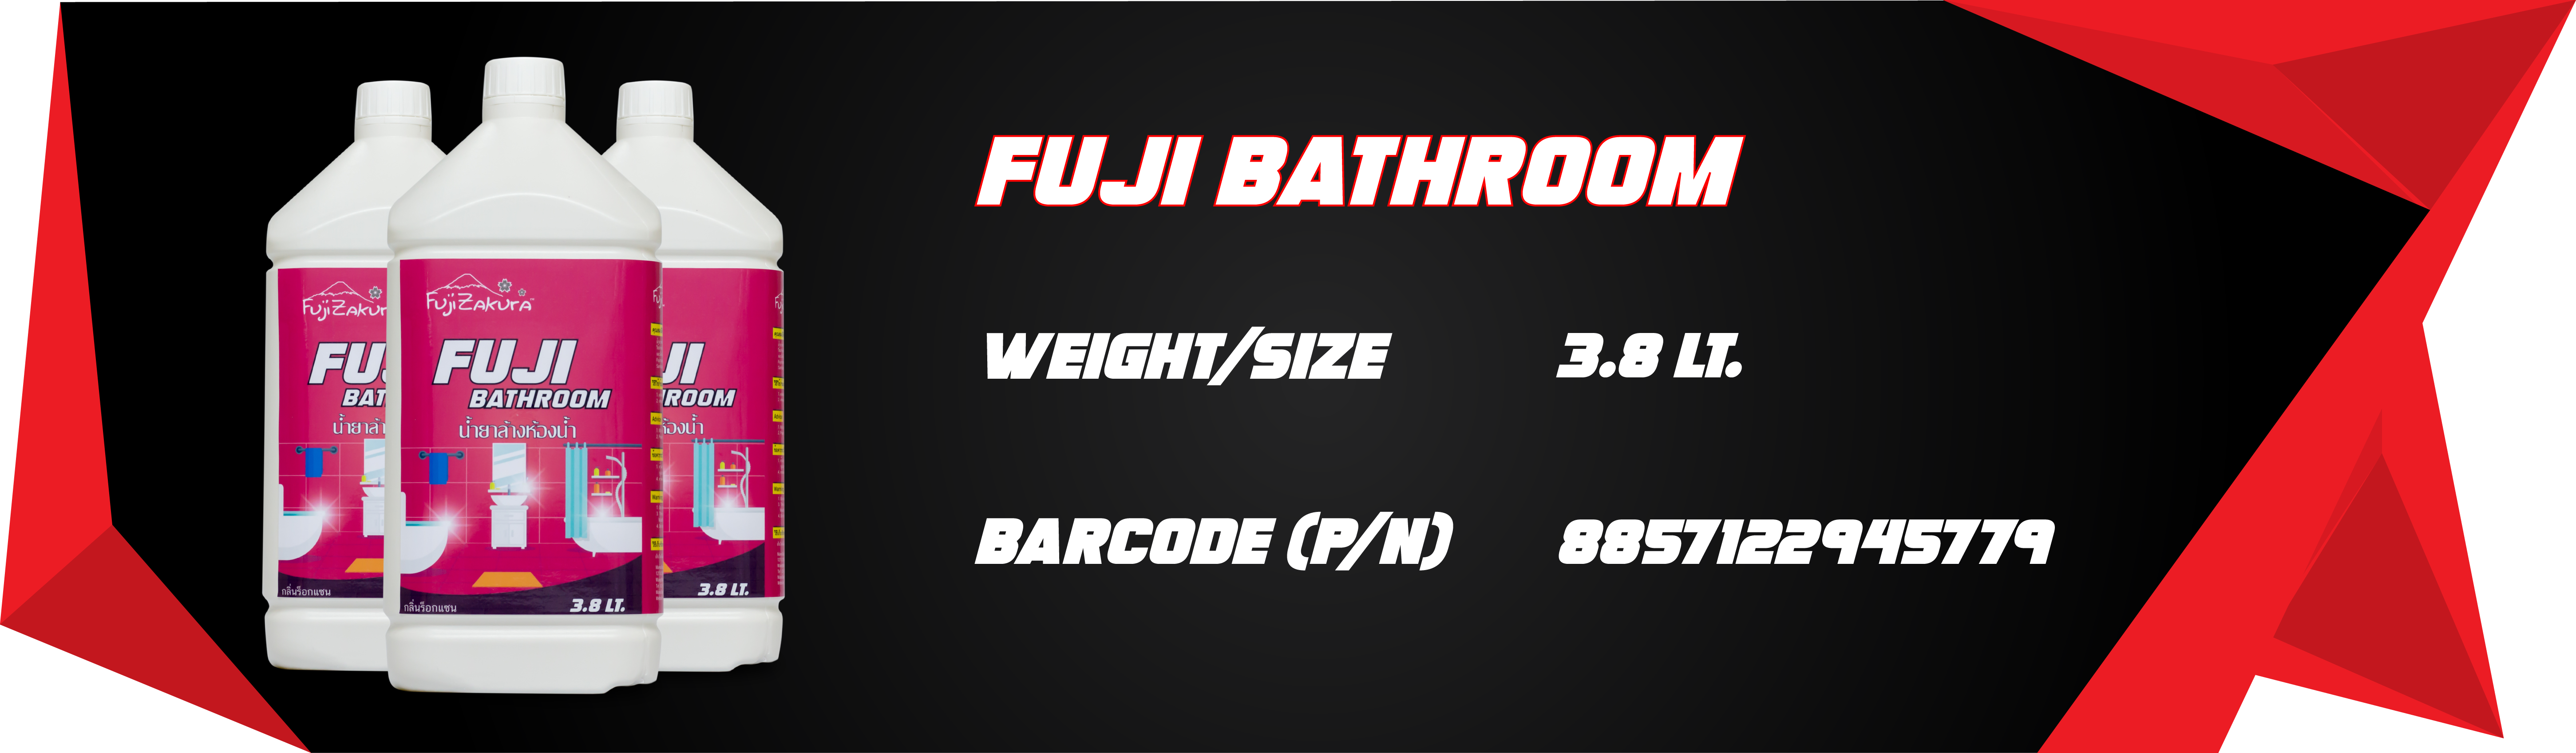 FUJI BATHROOM